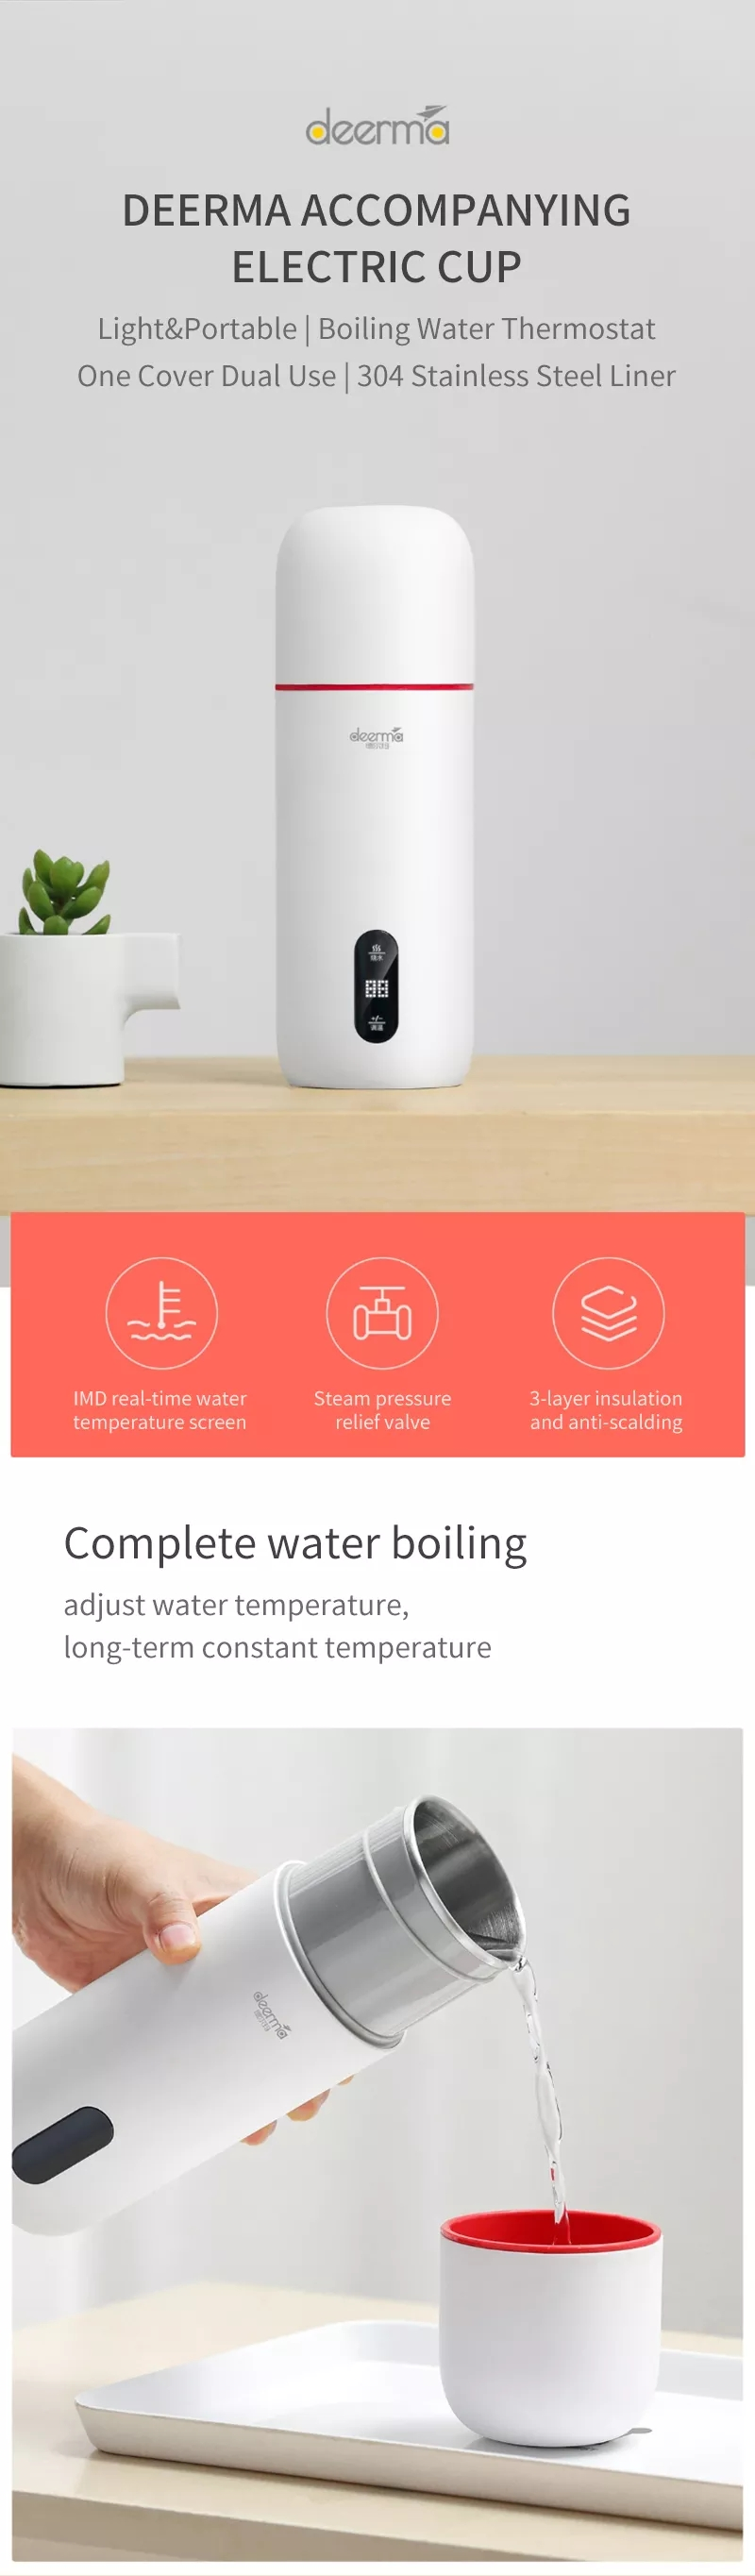 Deerma DR035 electric hot water cup small portable heating travel boiling water from Xiaomi Eco-system